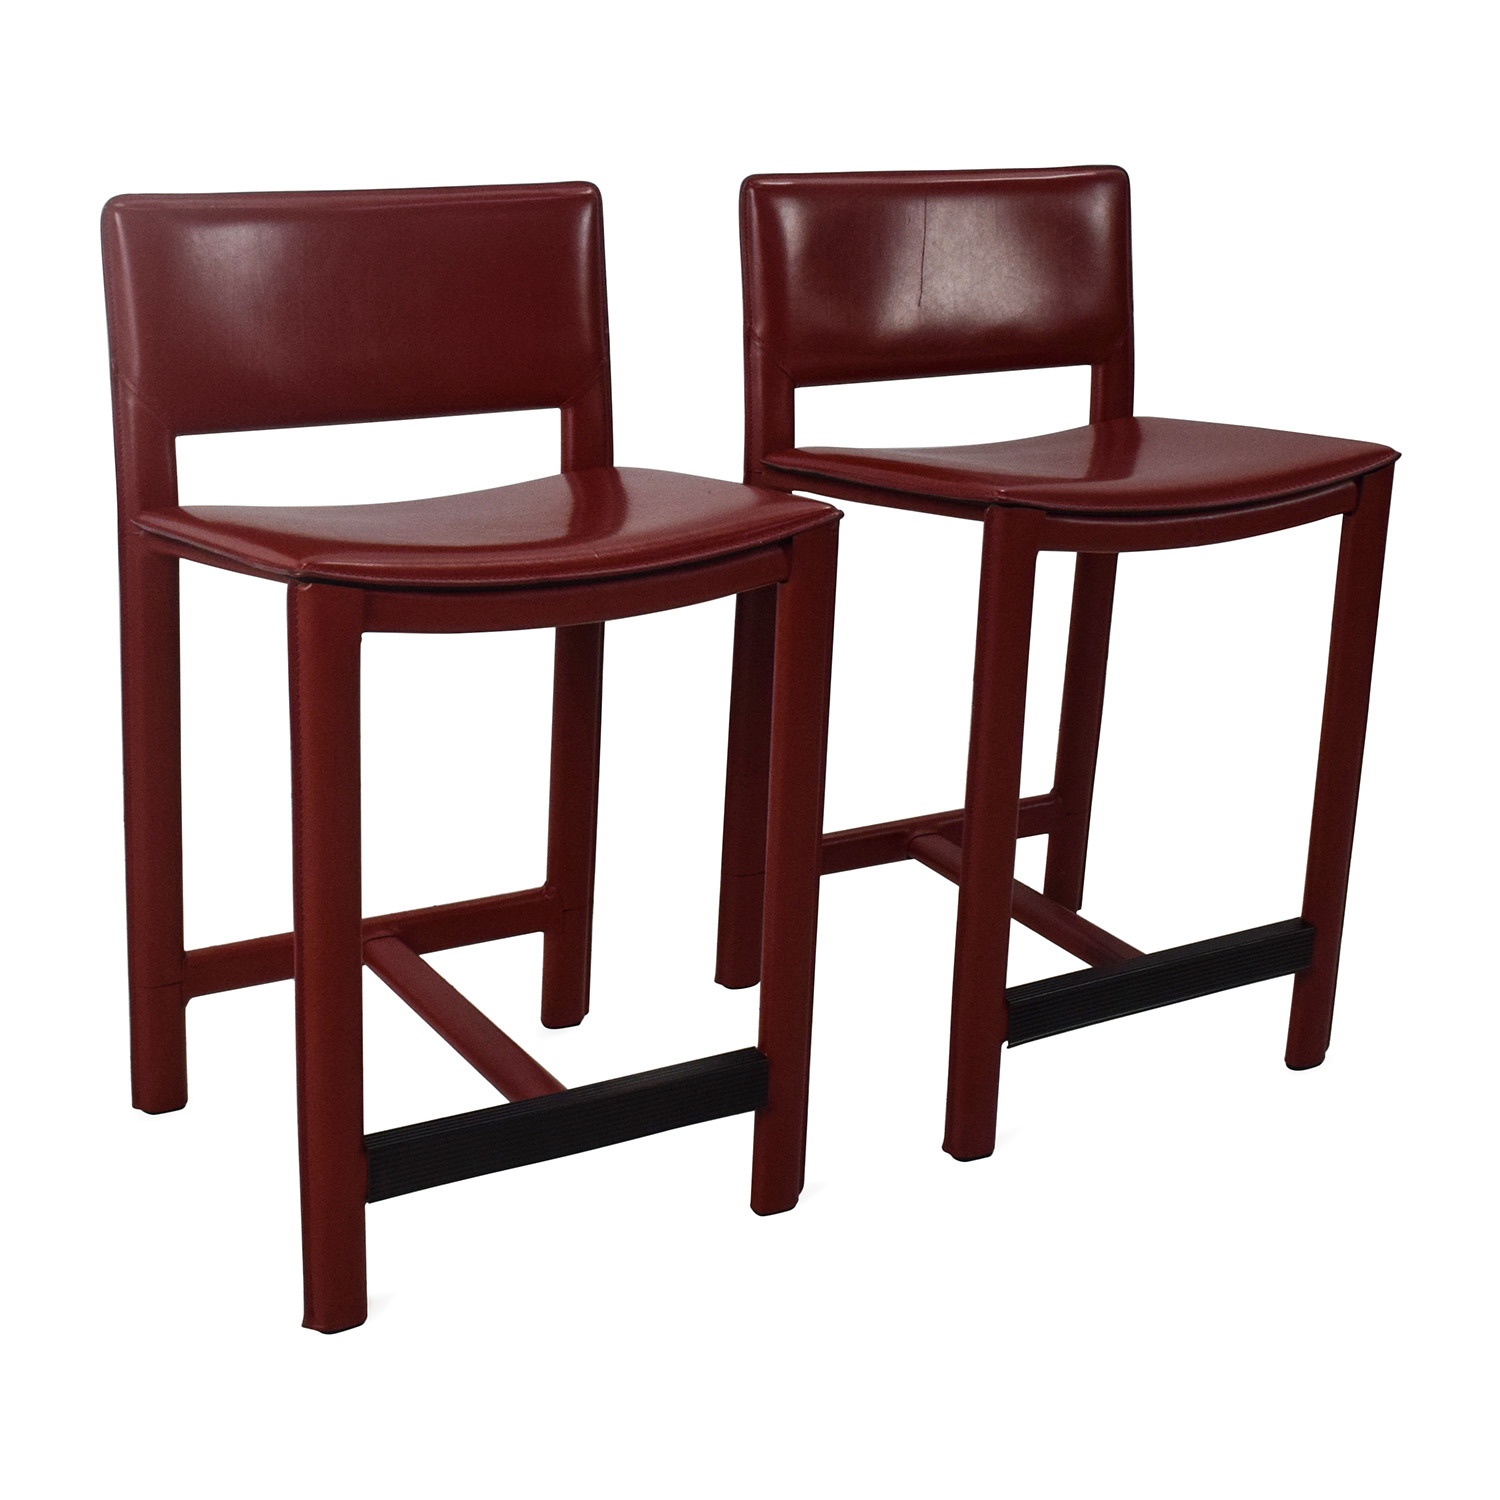 Room and Board Room Board Sava Leather Bar Stool Pair